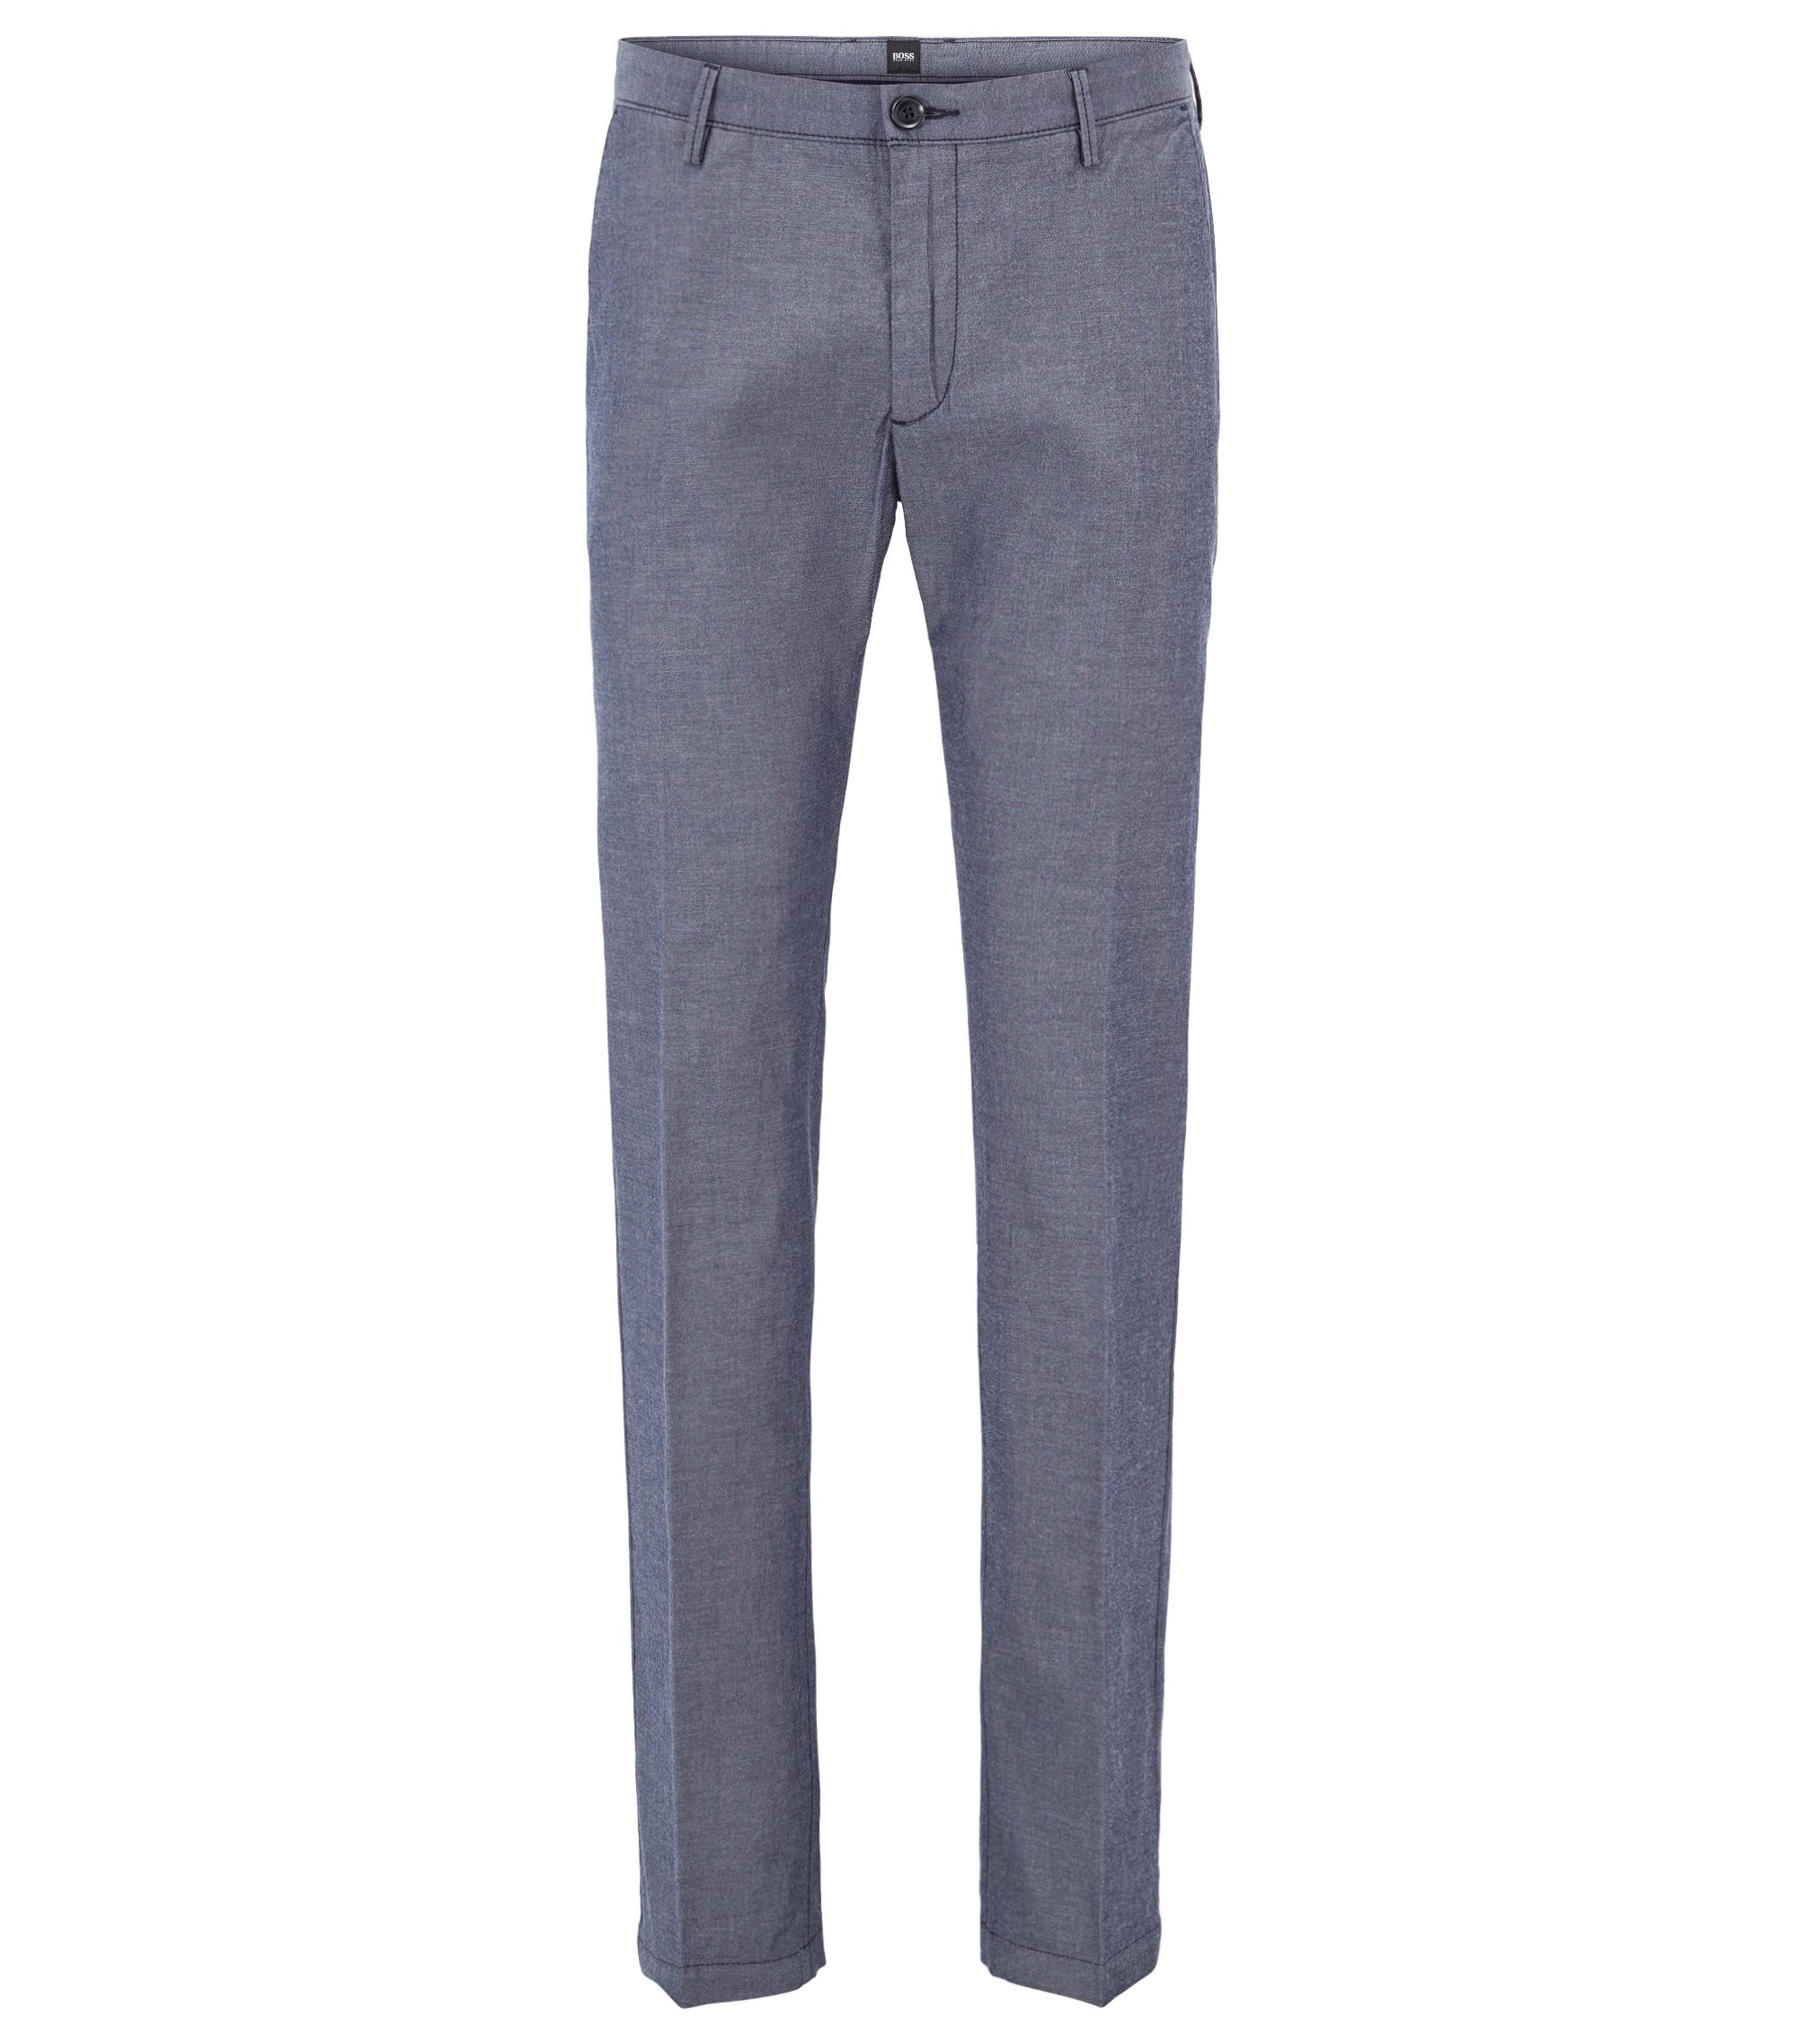 Chino Slim Fit en chambray de coton stretch, Bleu foncé